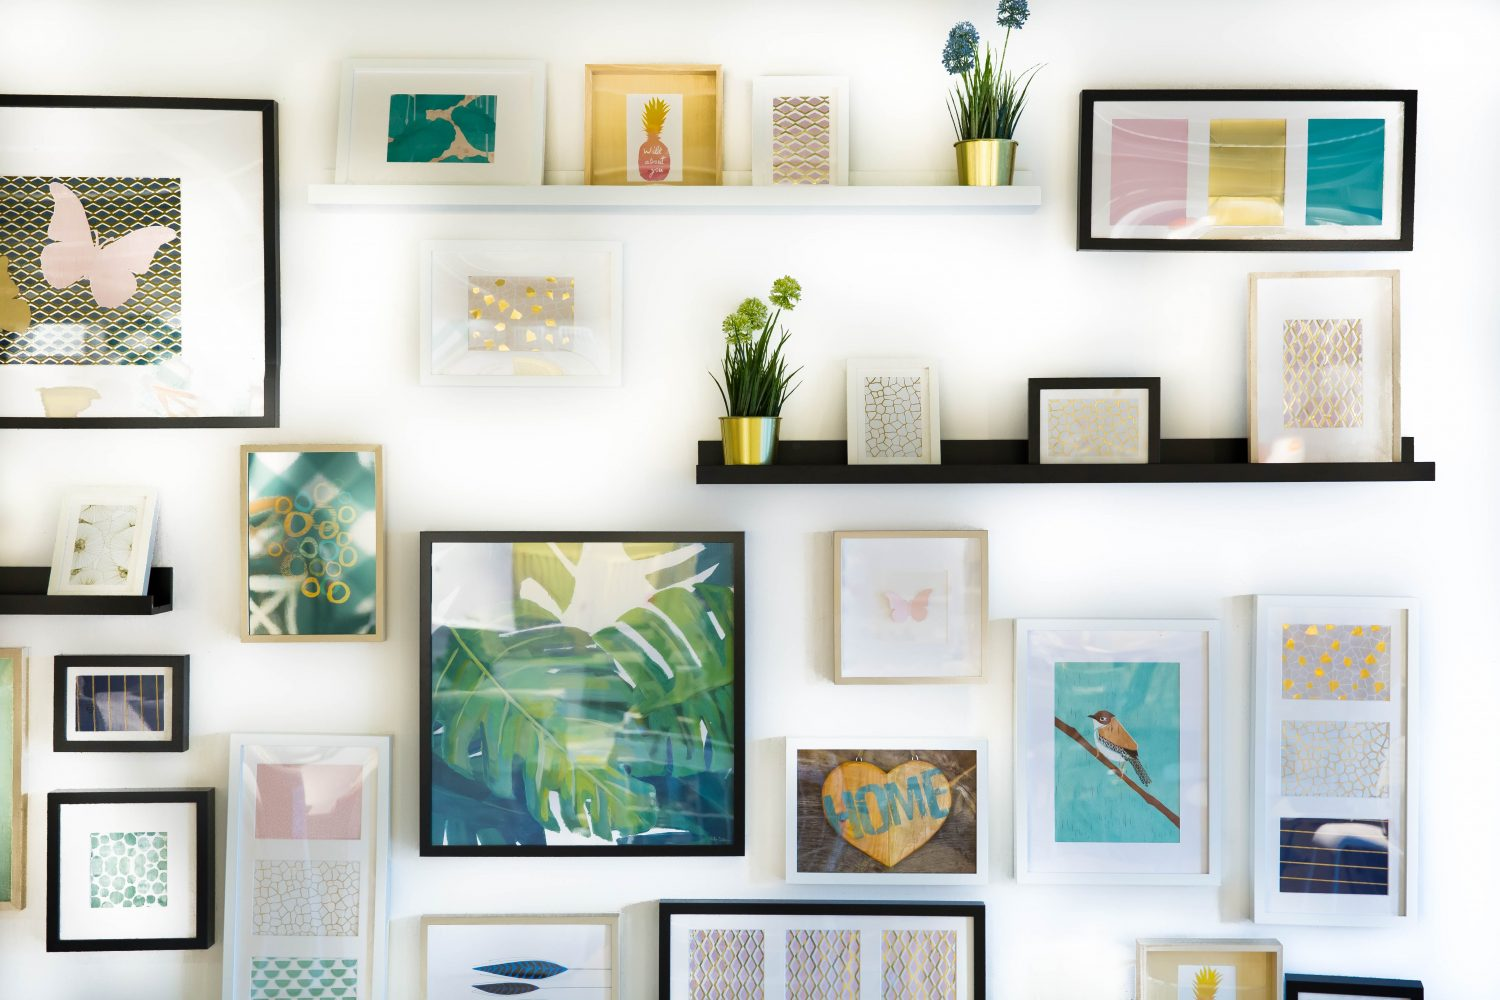 Save Money With These 8 DIY Home Decor Ideas